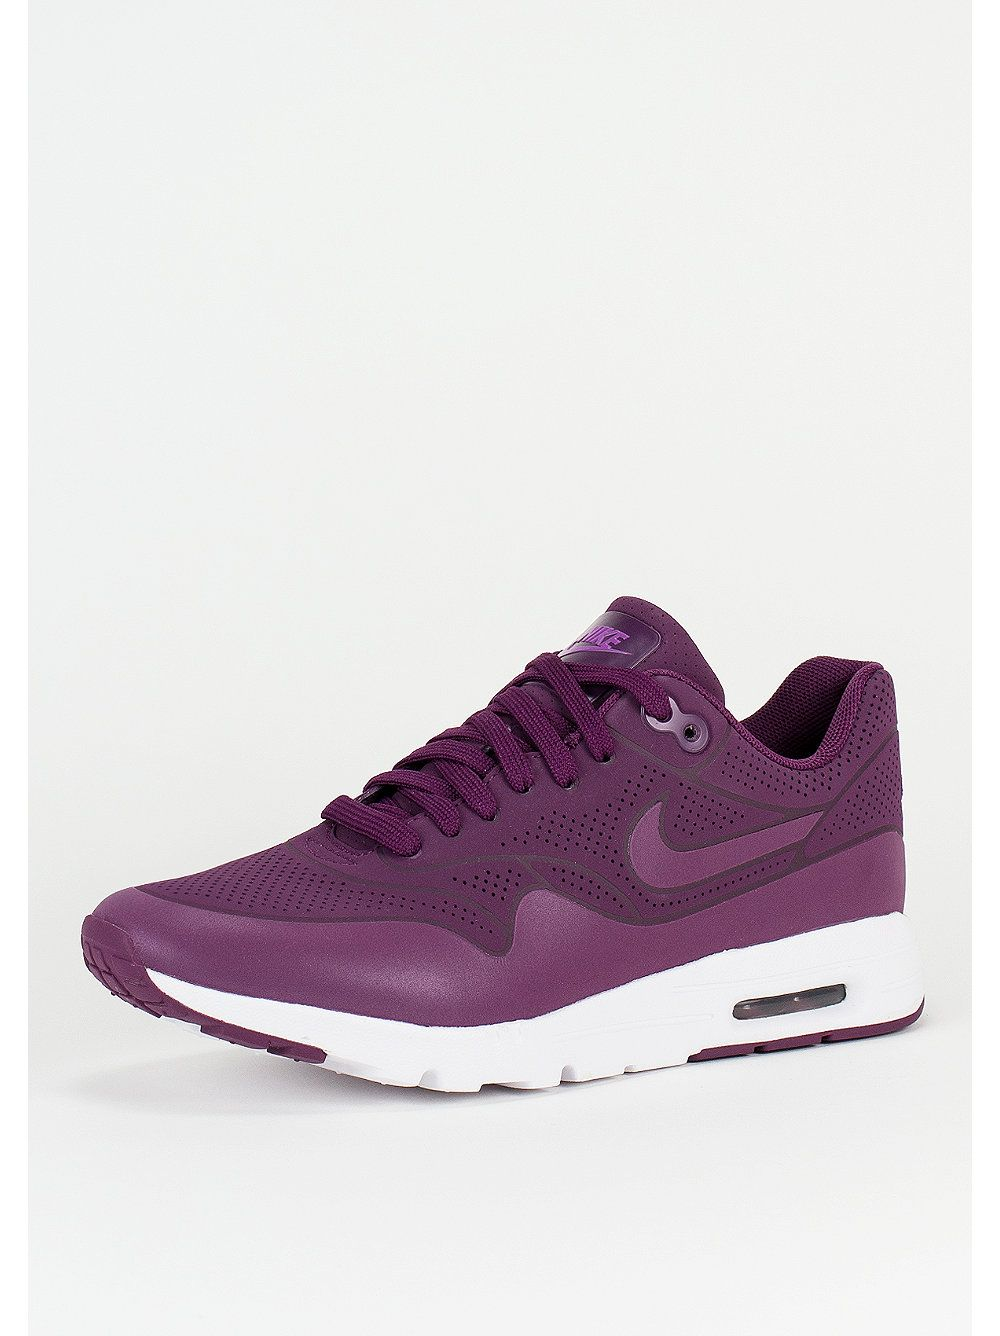 60dc4cb7d NIKE Schuh Wmns Air Max 1 Ultra Moire mulberry mulberry purple dusk ...